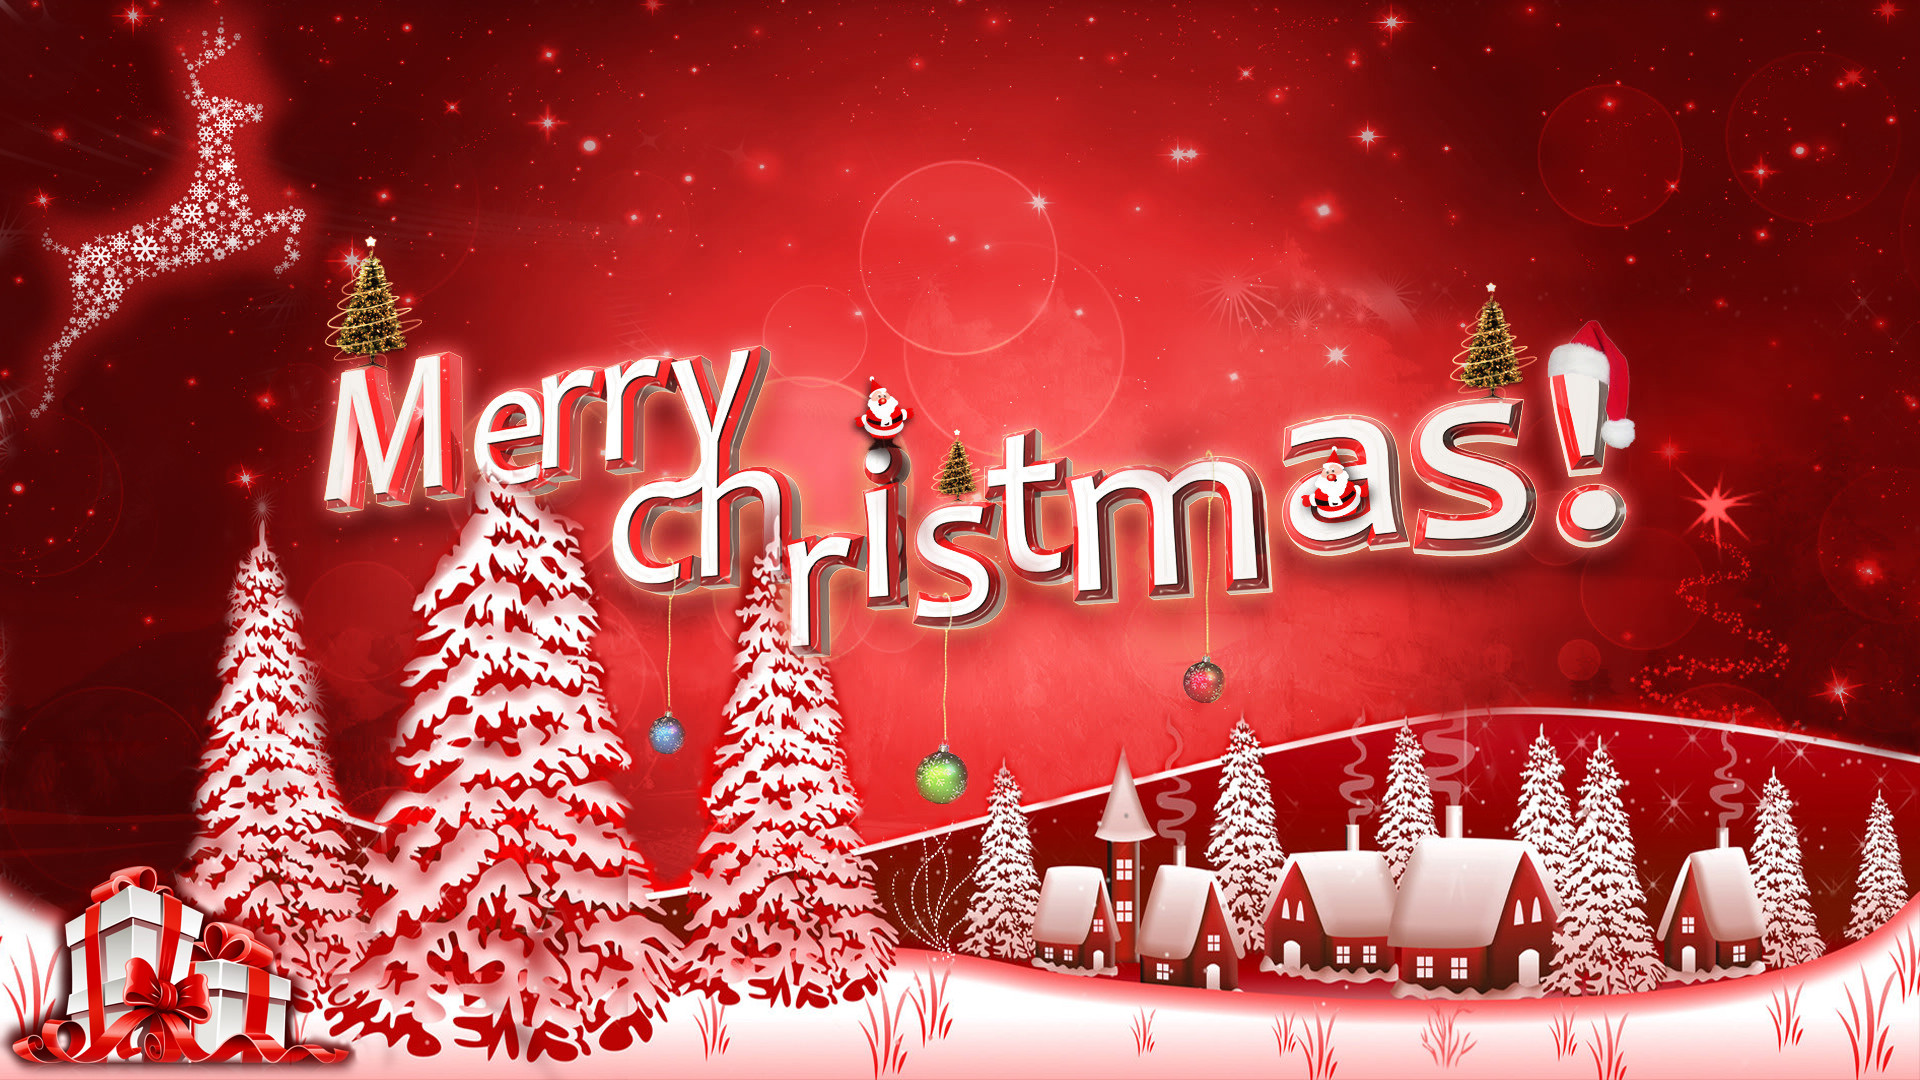 16 HD Christmas Desktop Wallpapers For Free Download